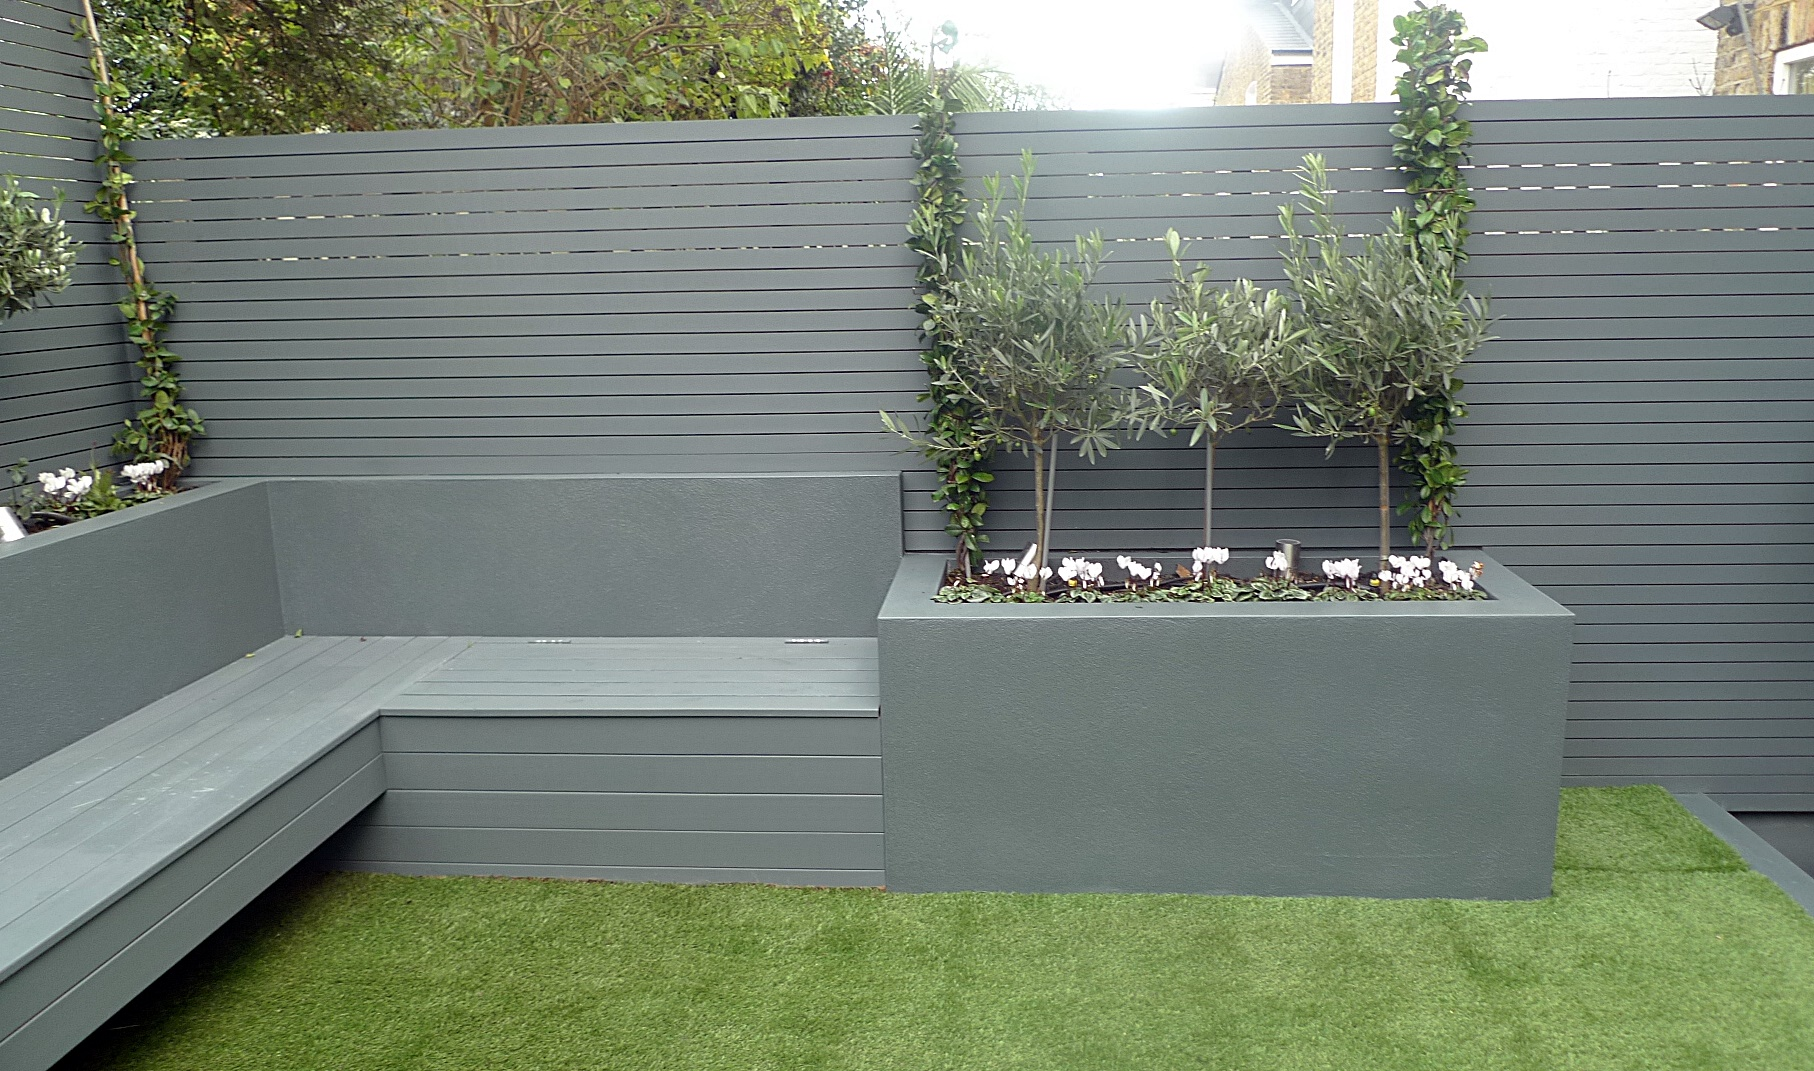 Grass london garden blog for Garden decking and grass